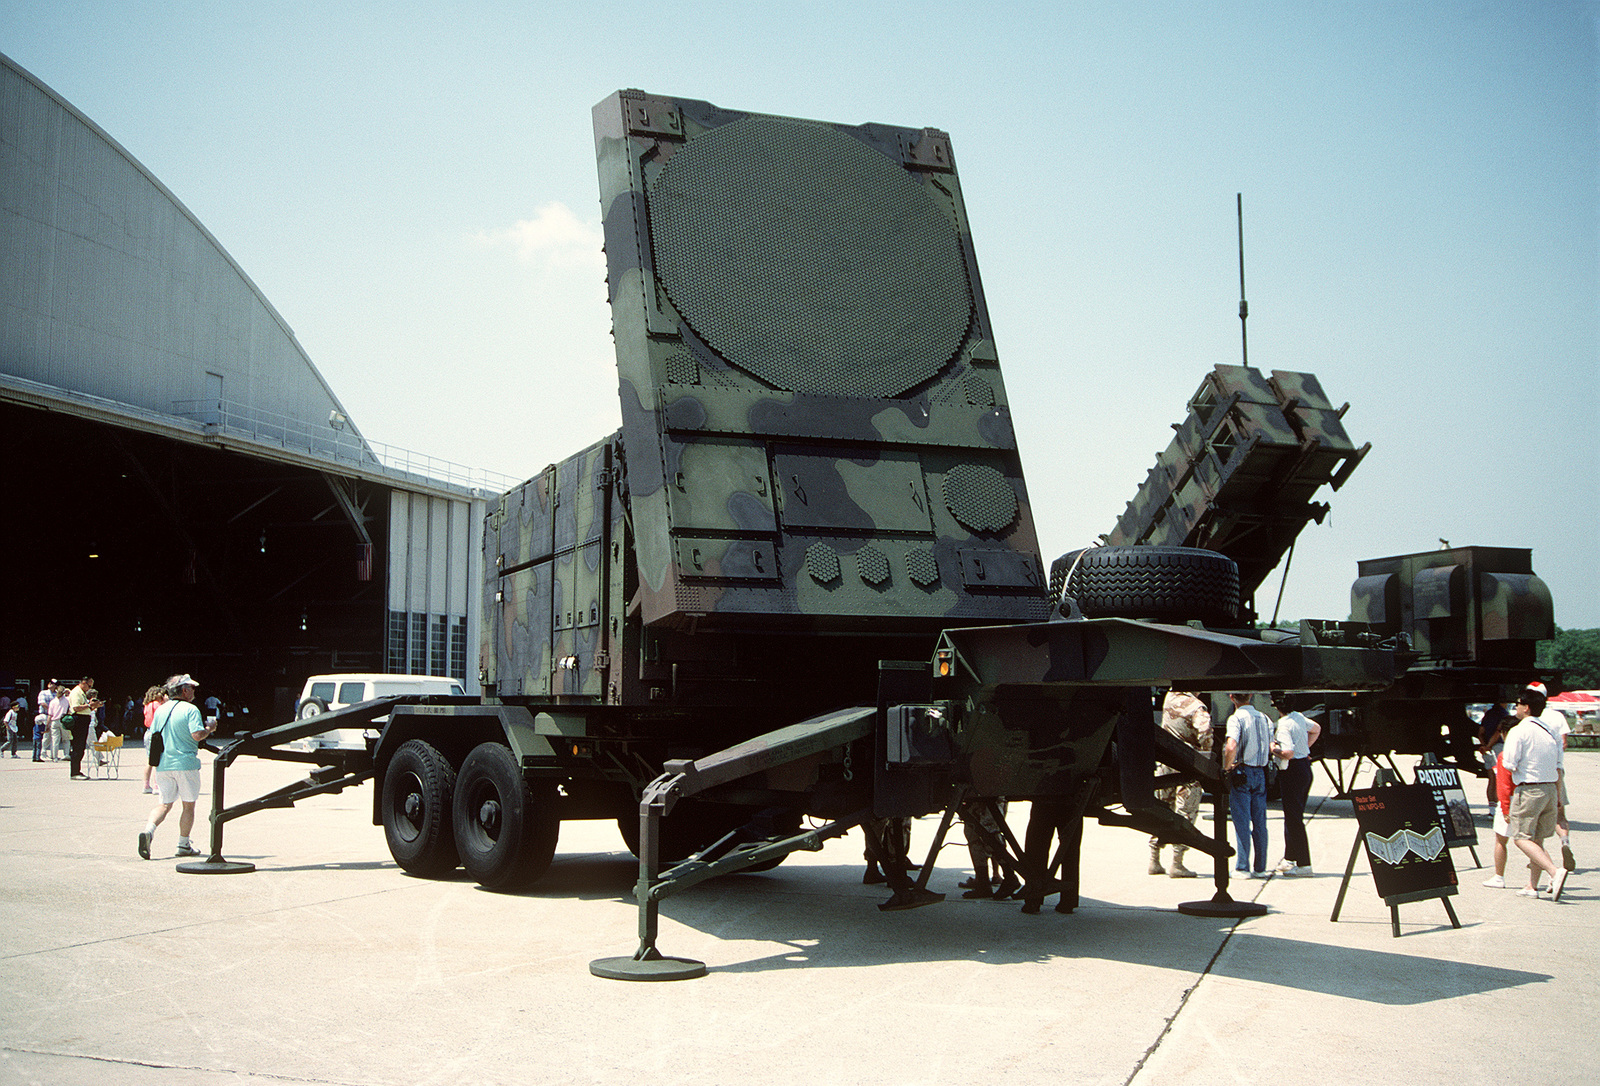 a-view-of-an-anmpq-53-radar-set-part-of-the-patriot-missile-system-on-display-2e51b1-1600.jpg